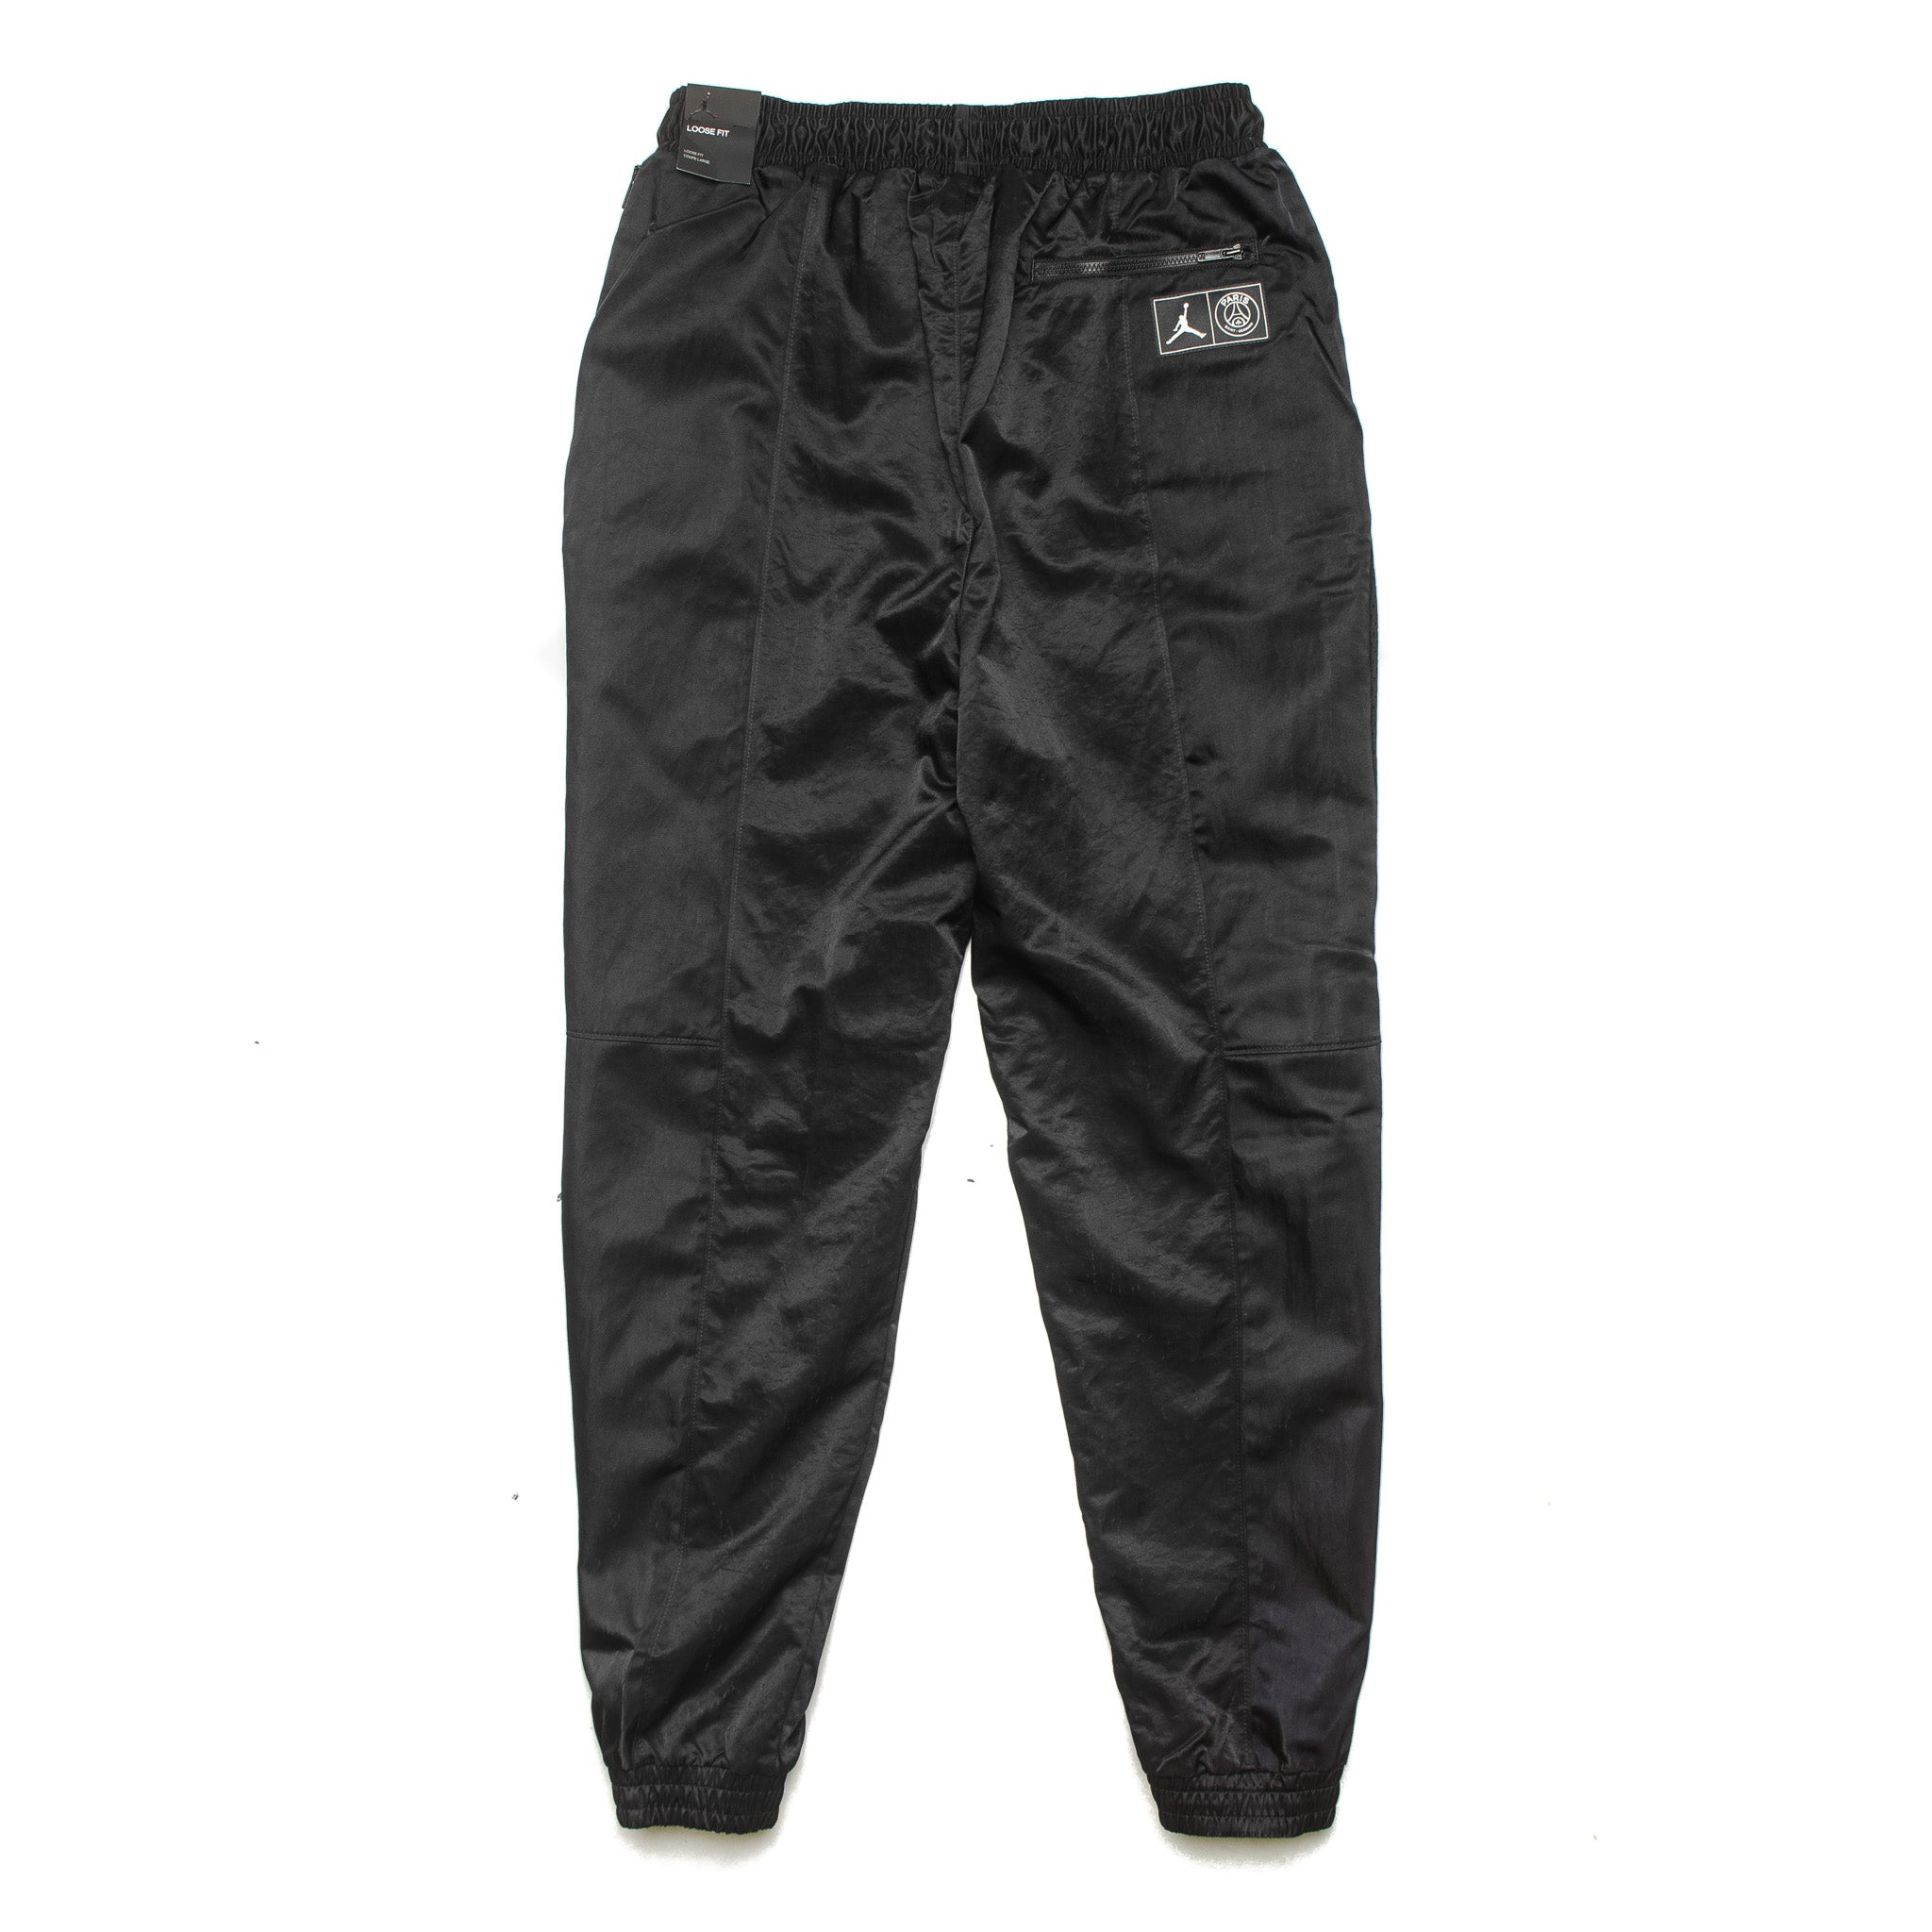 PSG Pants BQ8374-010 Black